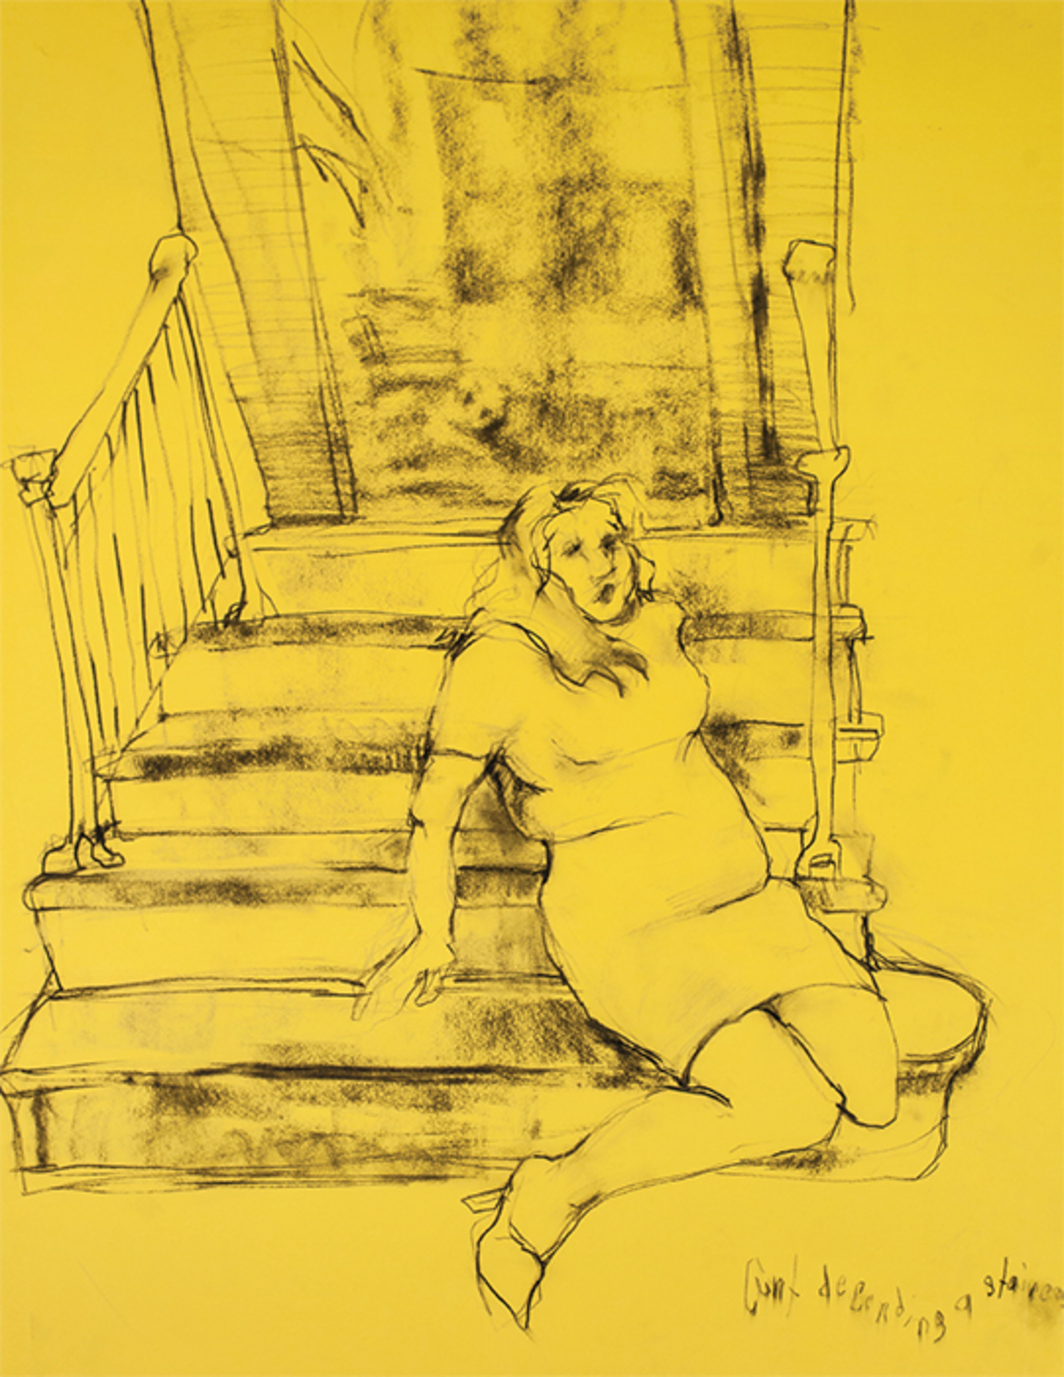 "*Alex Bag, _Cunt Descending a Staircase/NYC Prep_, 2009*, graphite on paper, 25 1/2 × 19 1/2""."